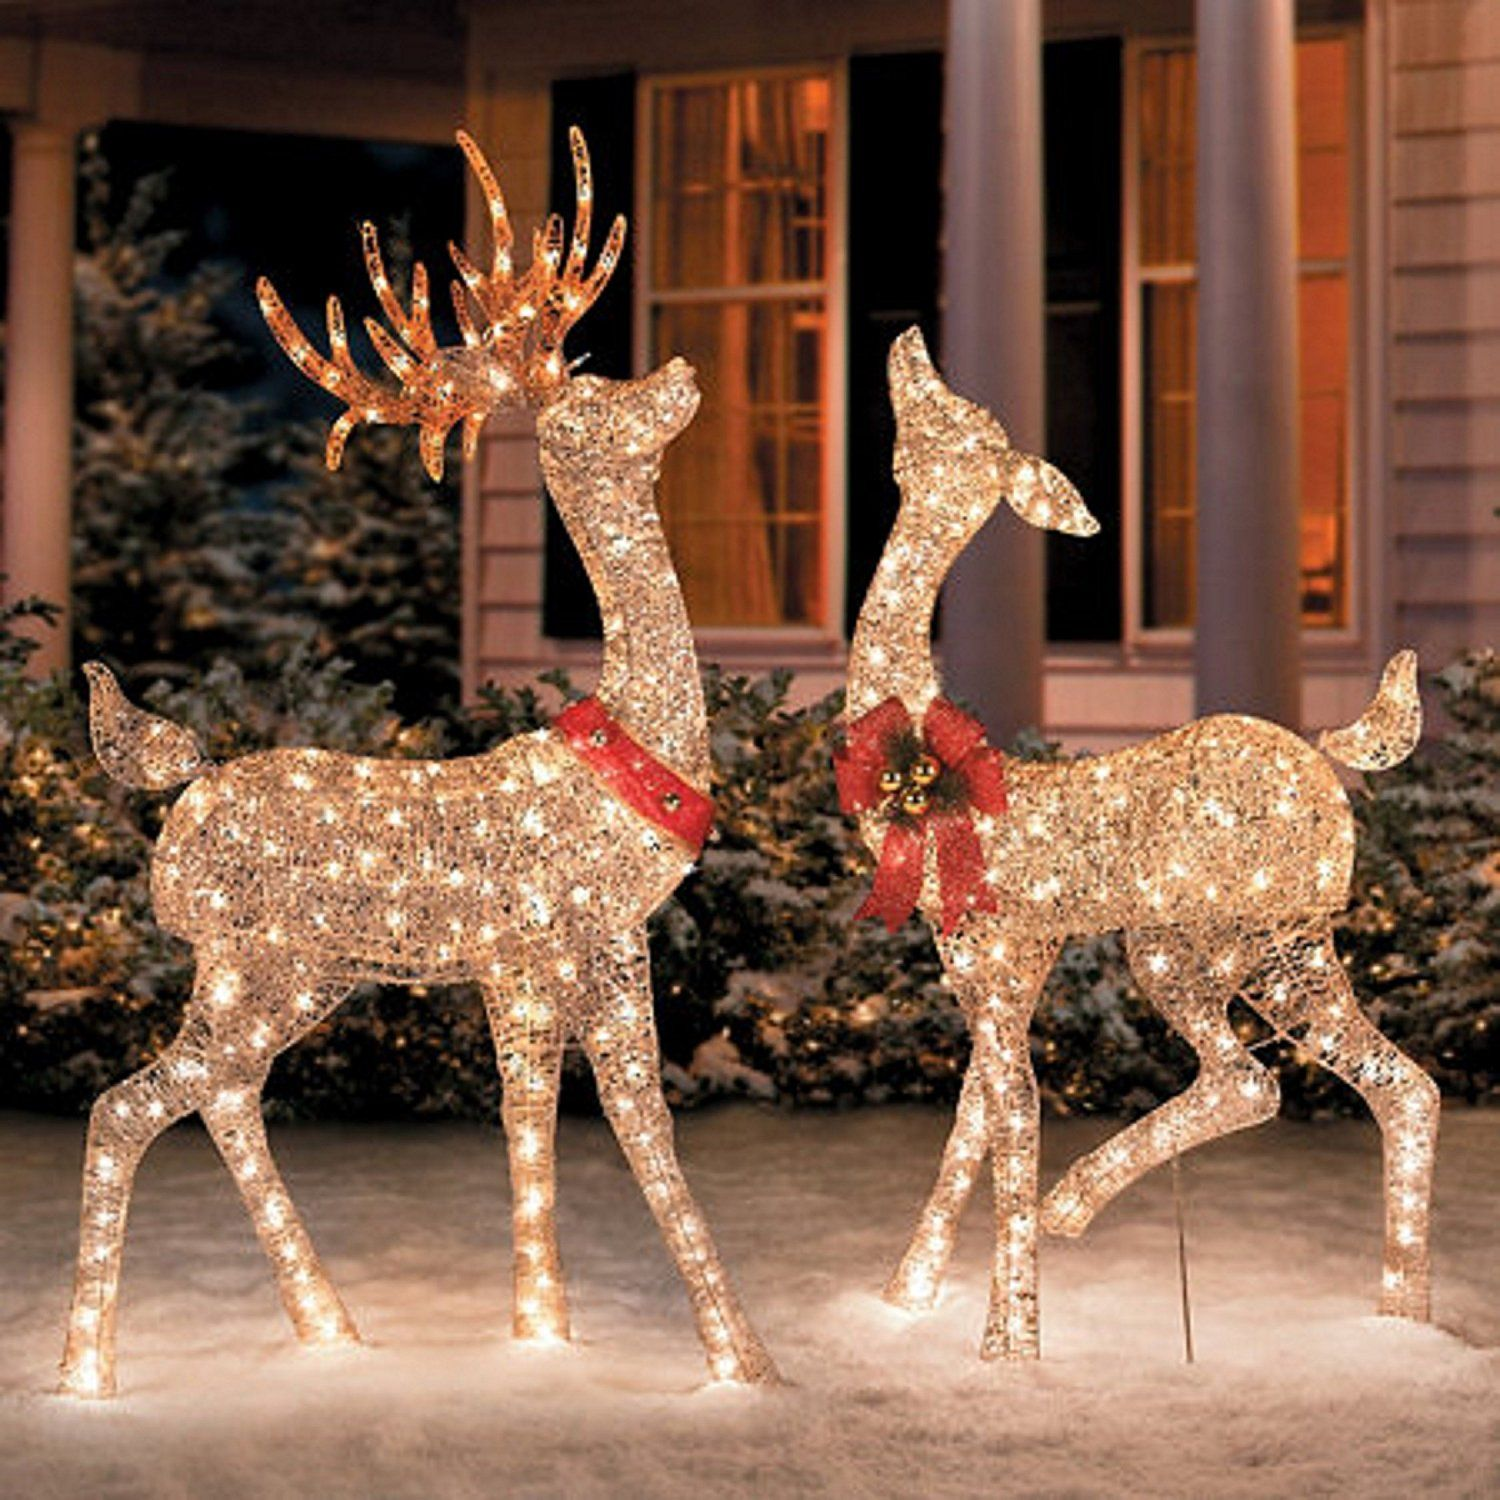 21 Christmas Outdoor Decorations, ensure it makes a visual